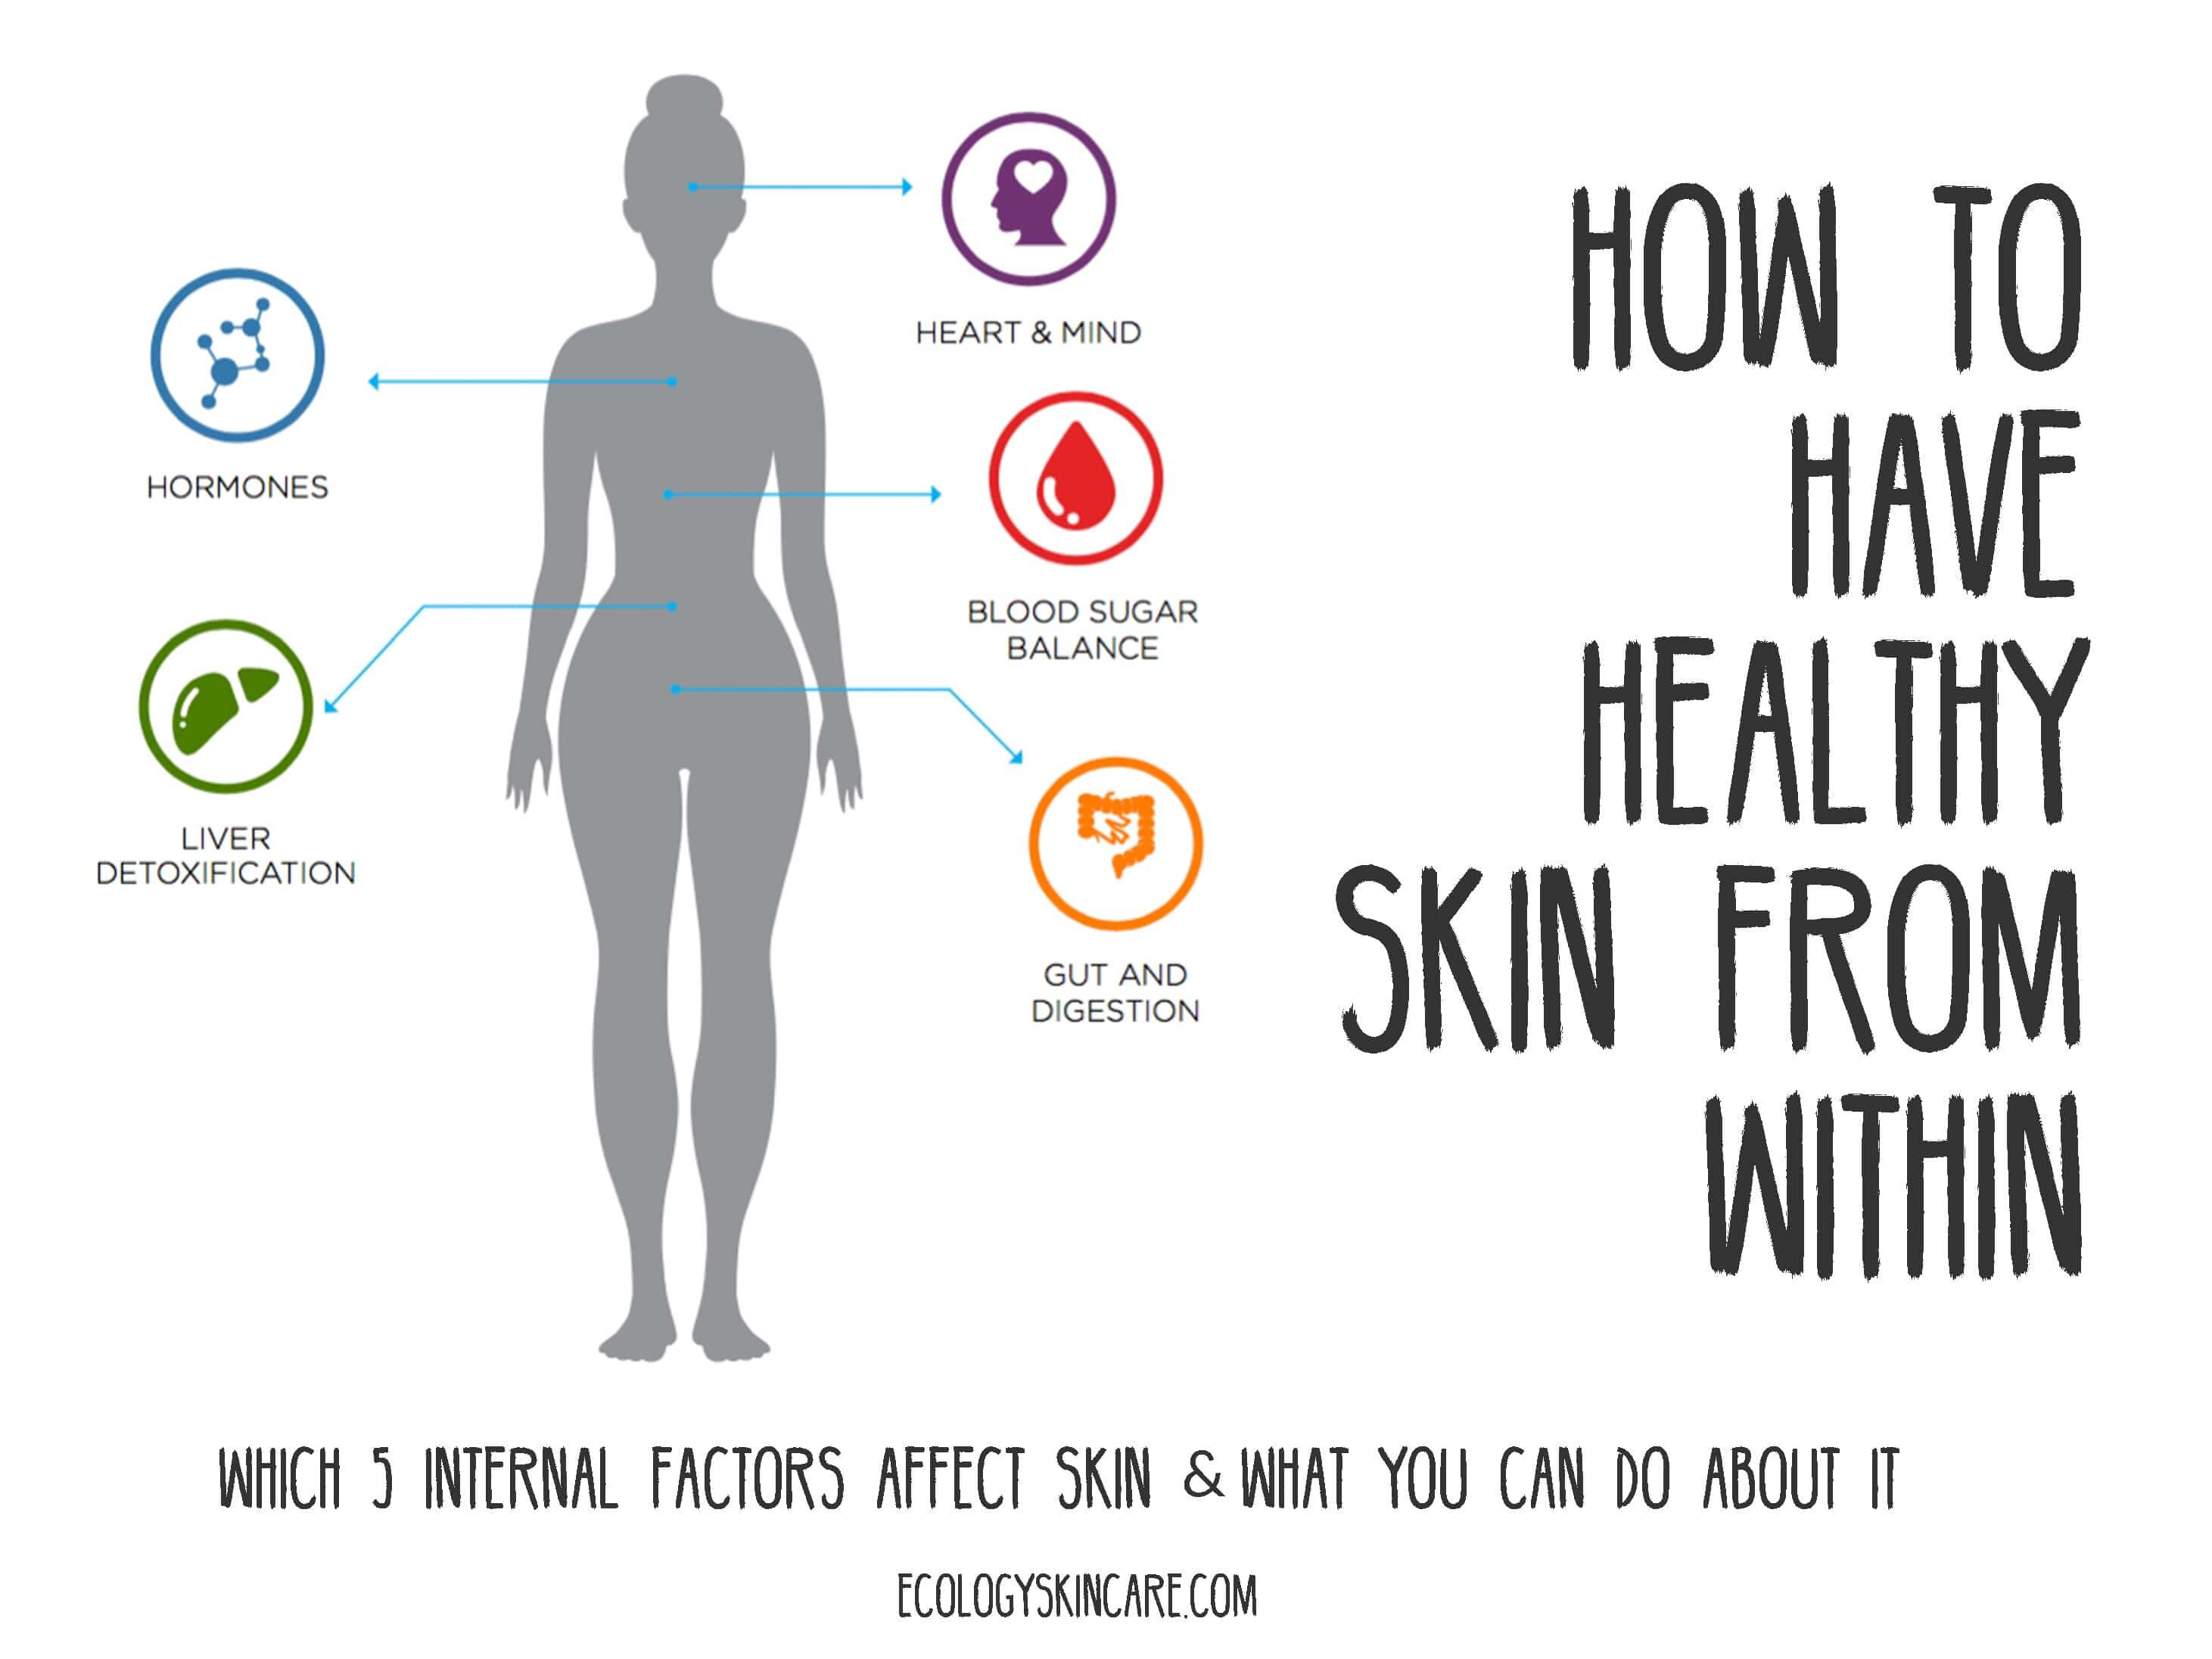 How to Have Healthy Skin From Within